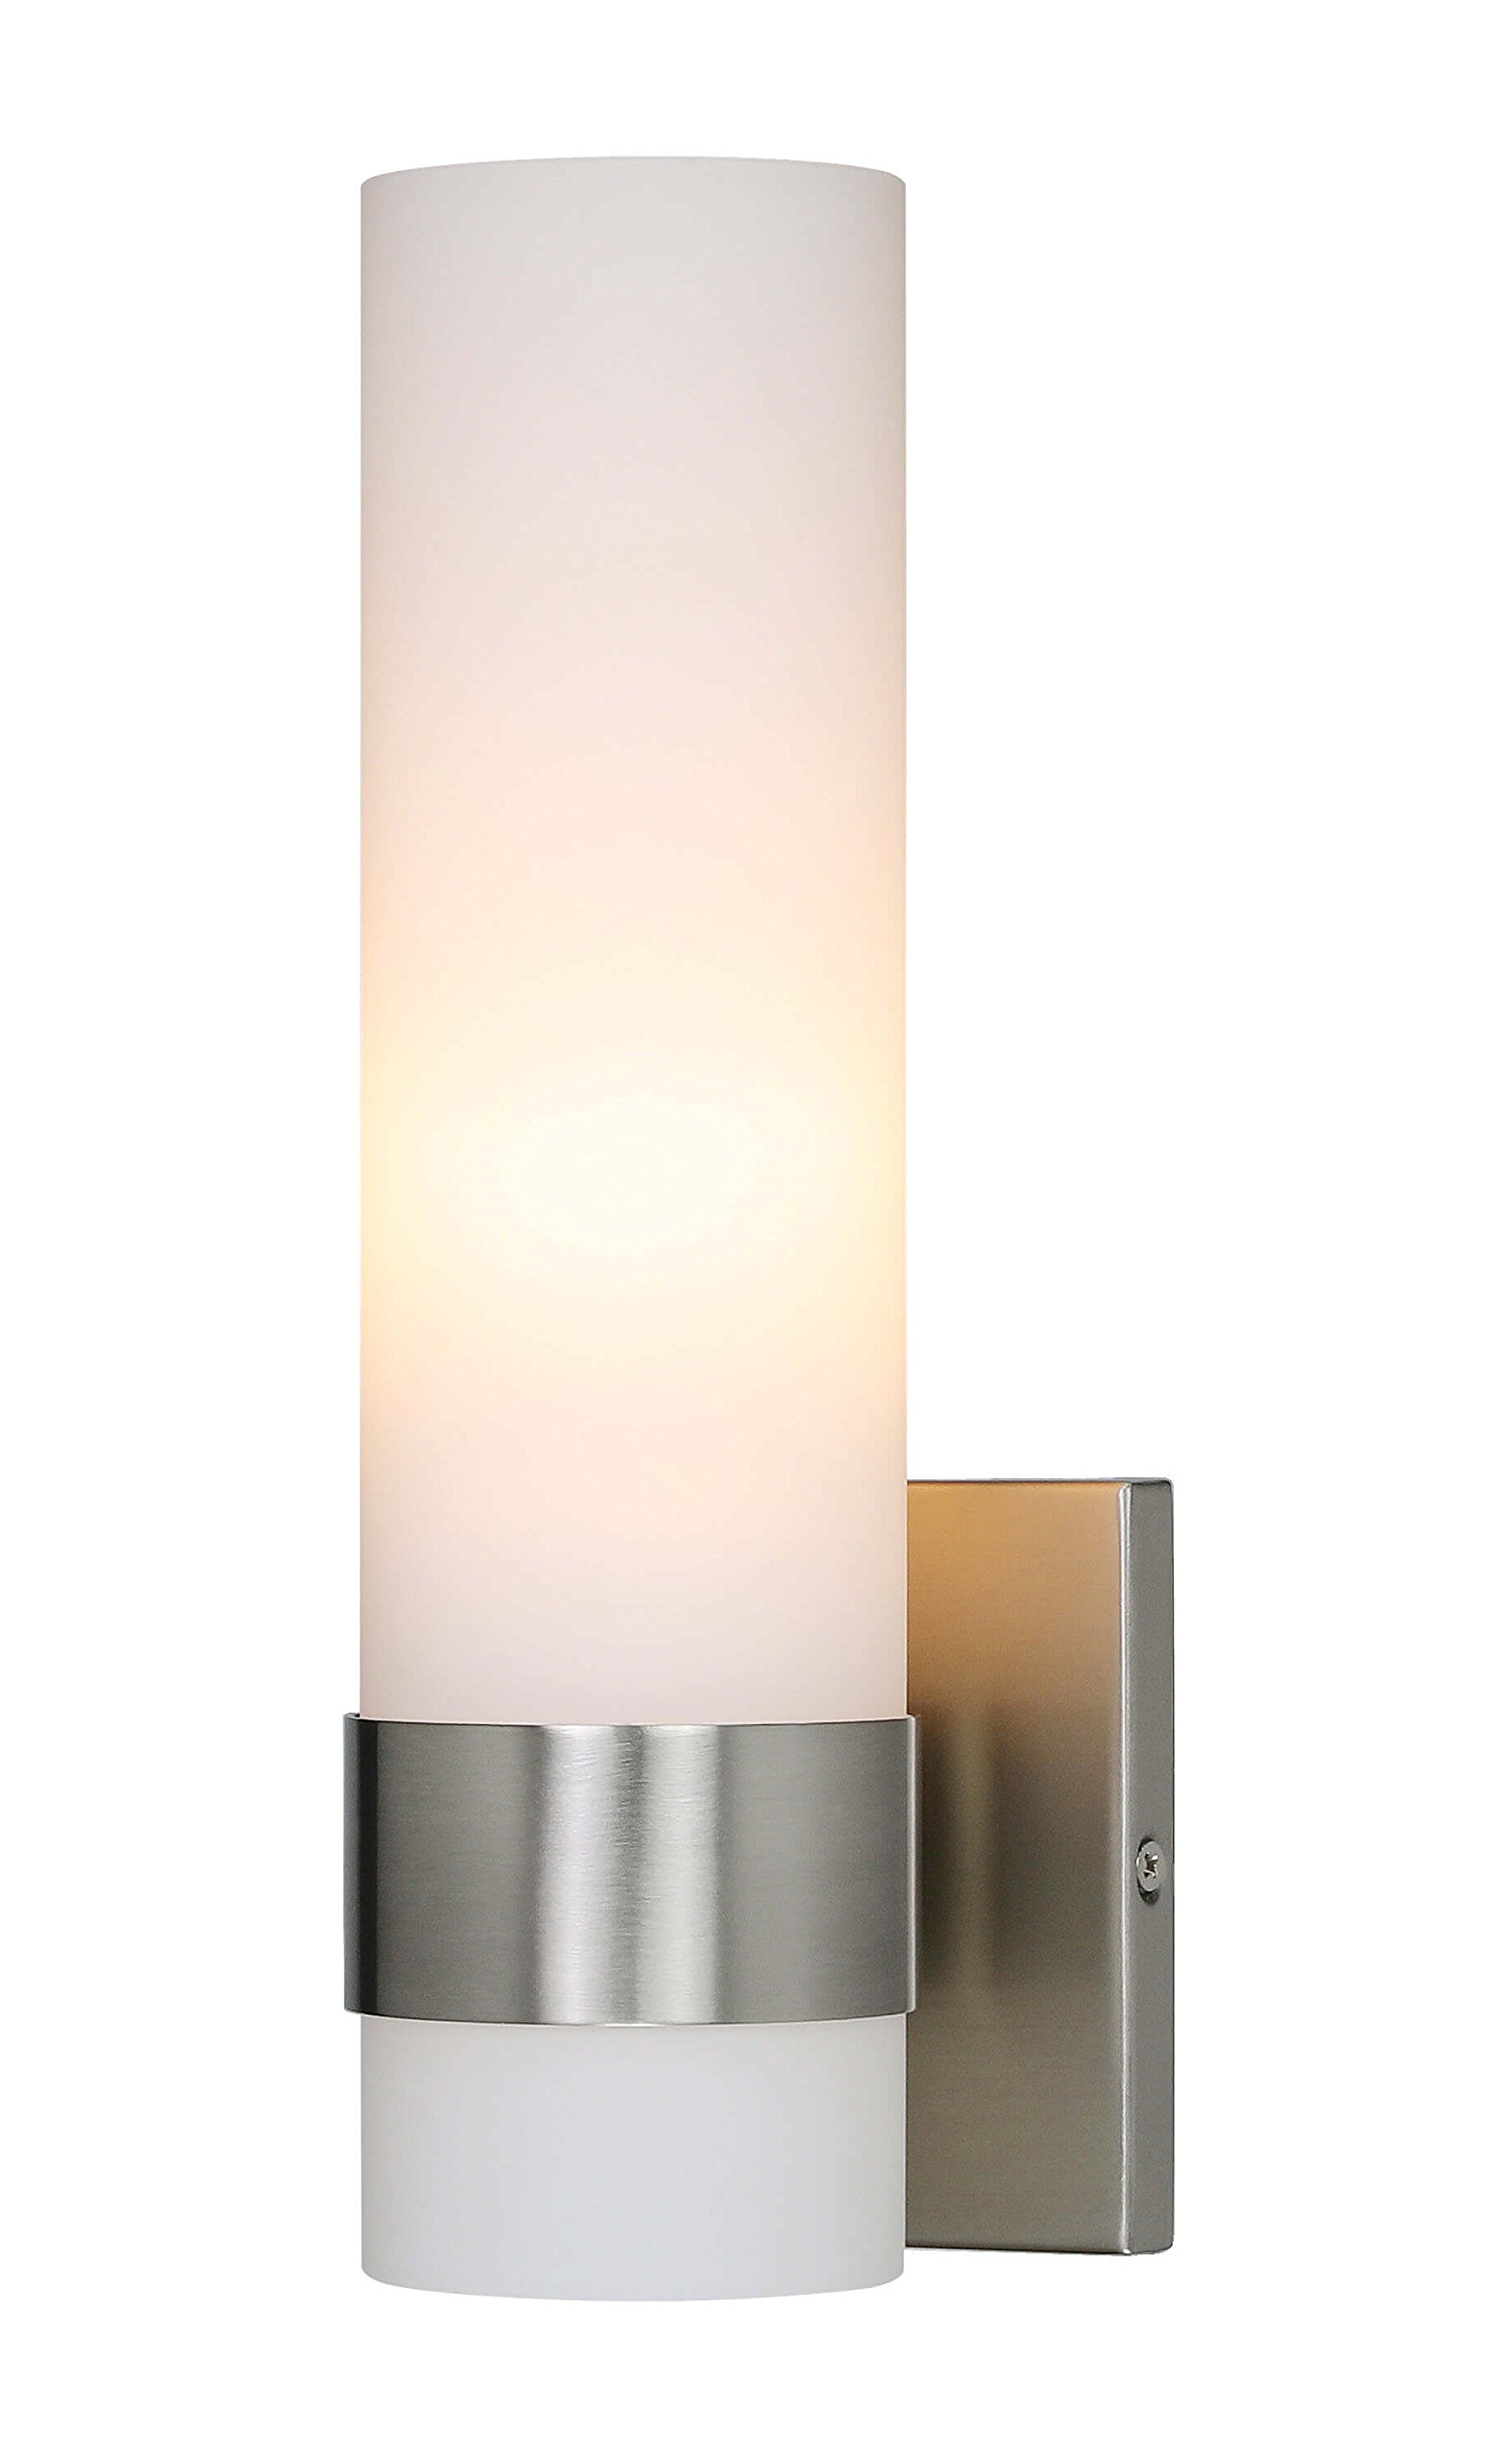 Wall Light ADA Wall Sconce with Opal Cylinder Glass in Brushed Nickel, Bathroom Vanity Light with GU24 Bulb Suitable for Living Room & Corridor XiNBEi-Lighting XB-W1185-BN